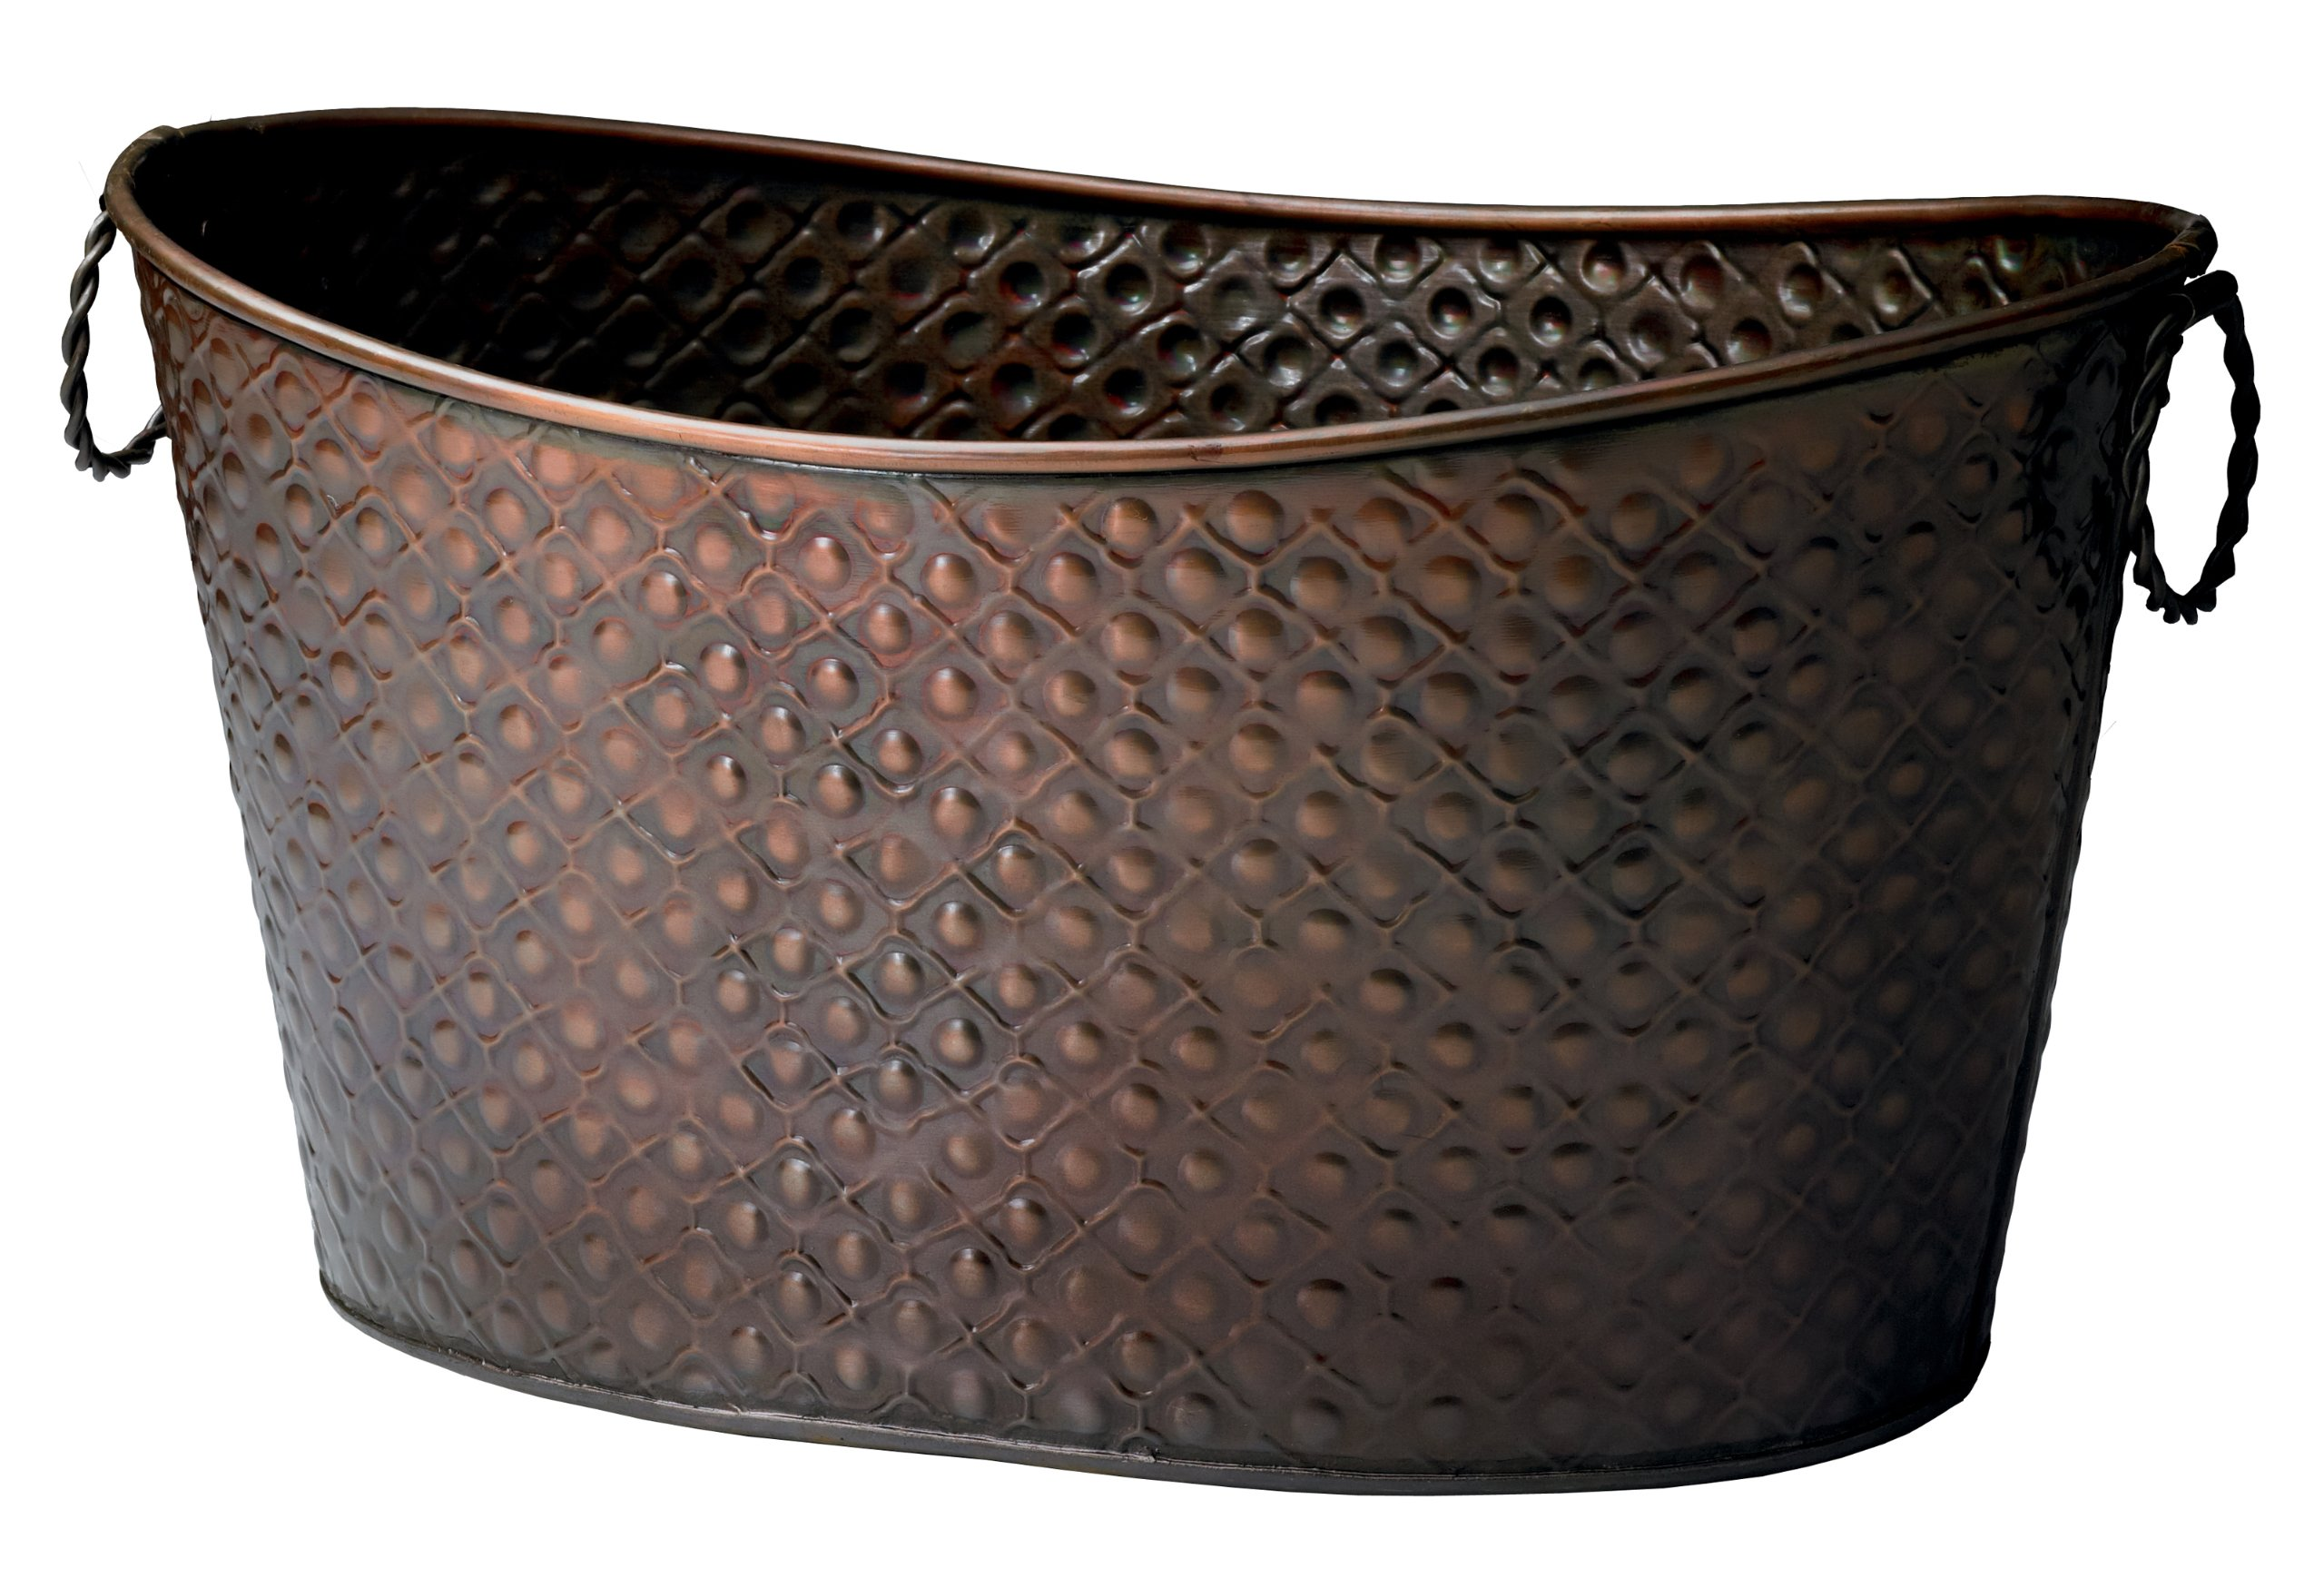 KINDWER Copper Relief Oval Beverage Tub/Planter by KINDWER (Image #1)